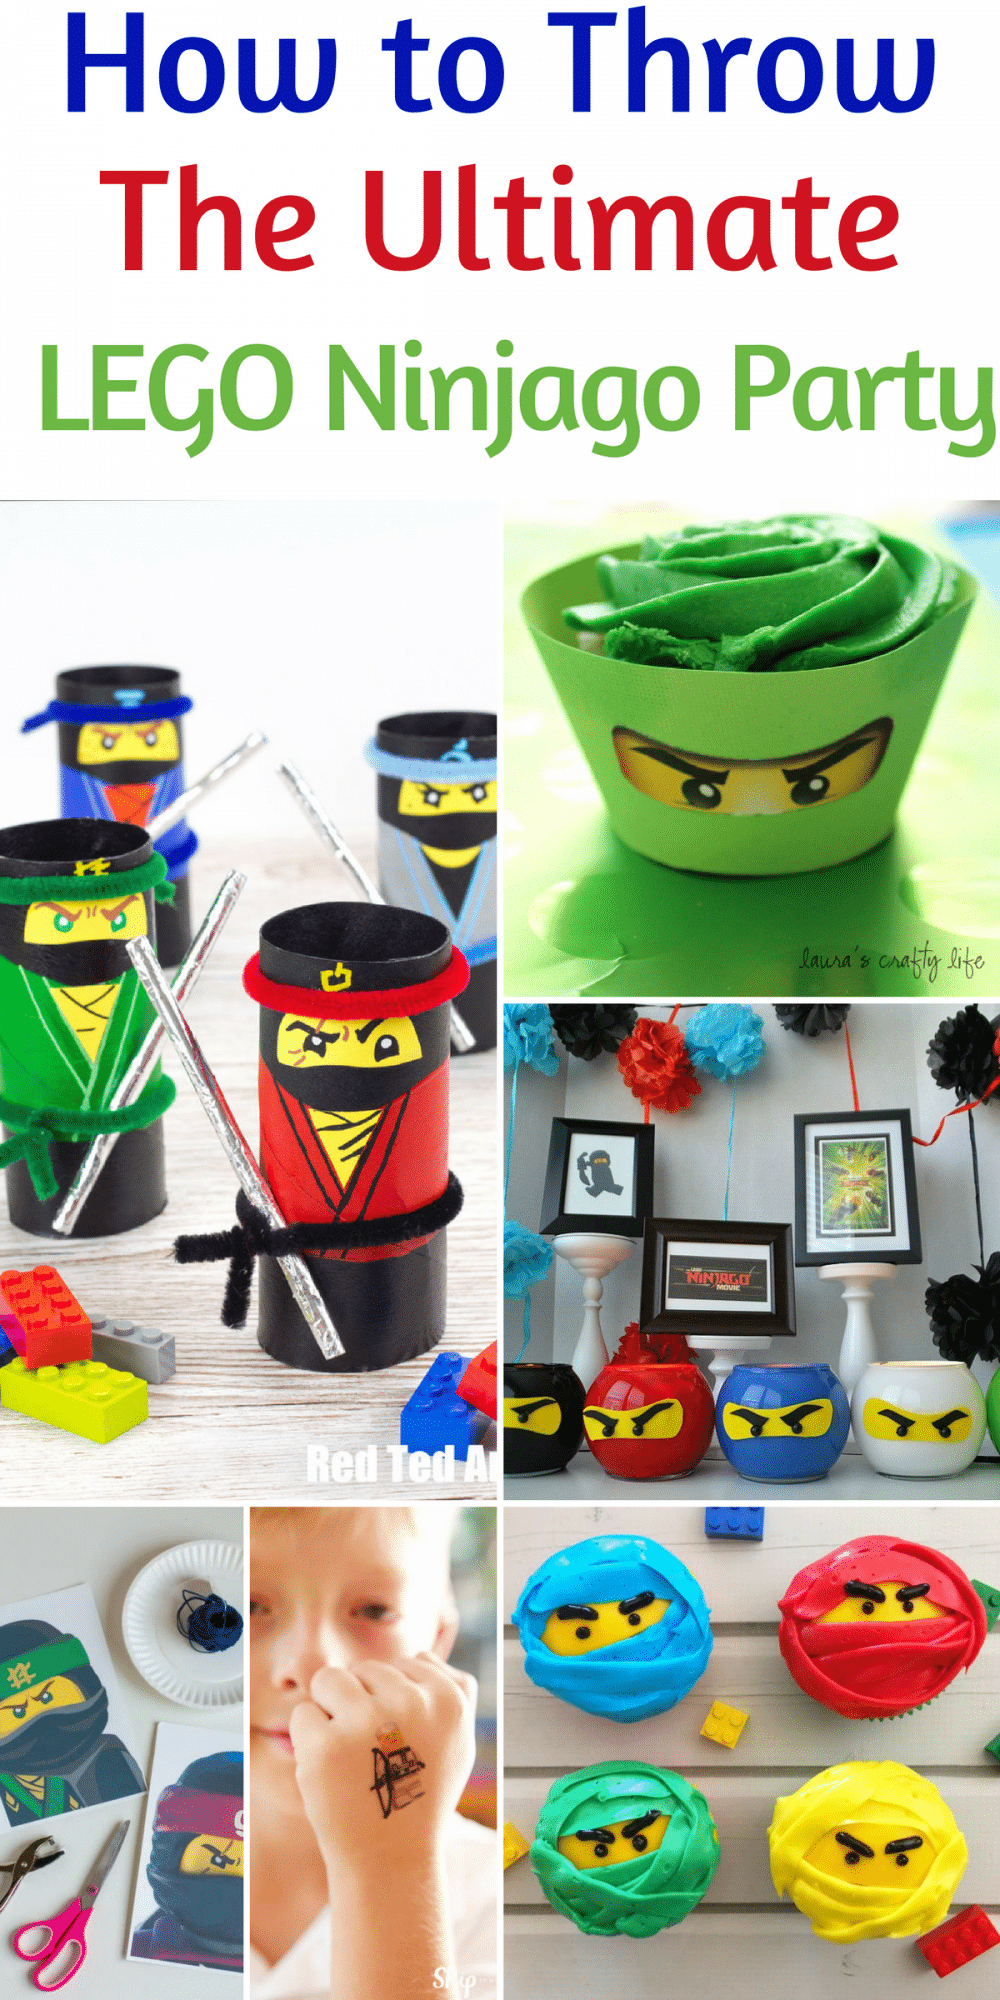 How to Throw the Ultimate Lego Ninjago Party